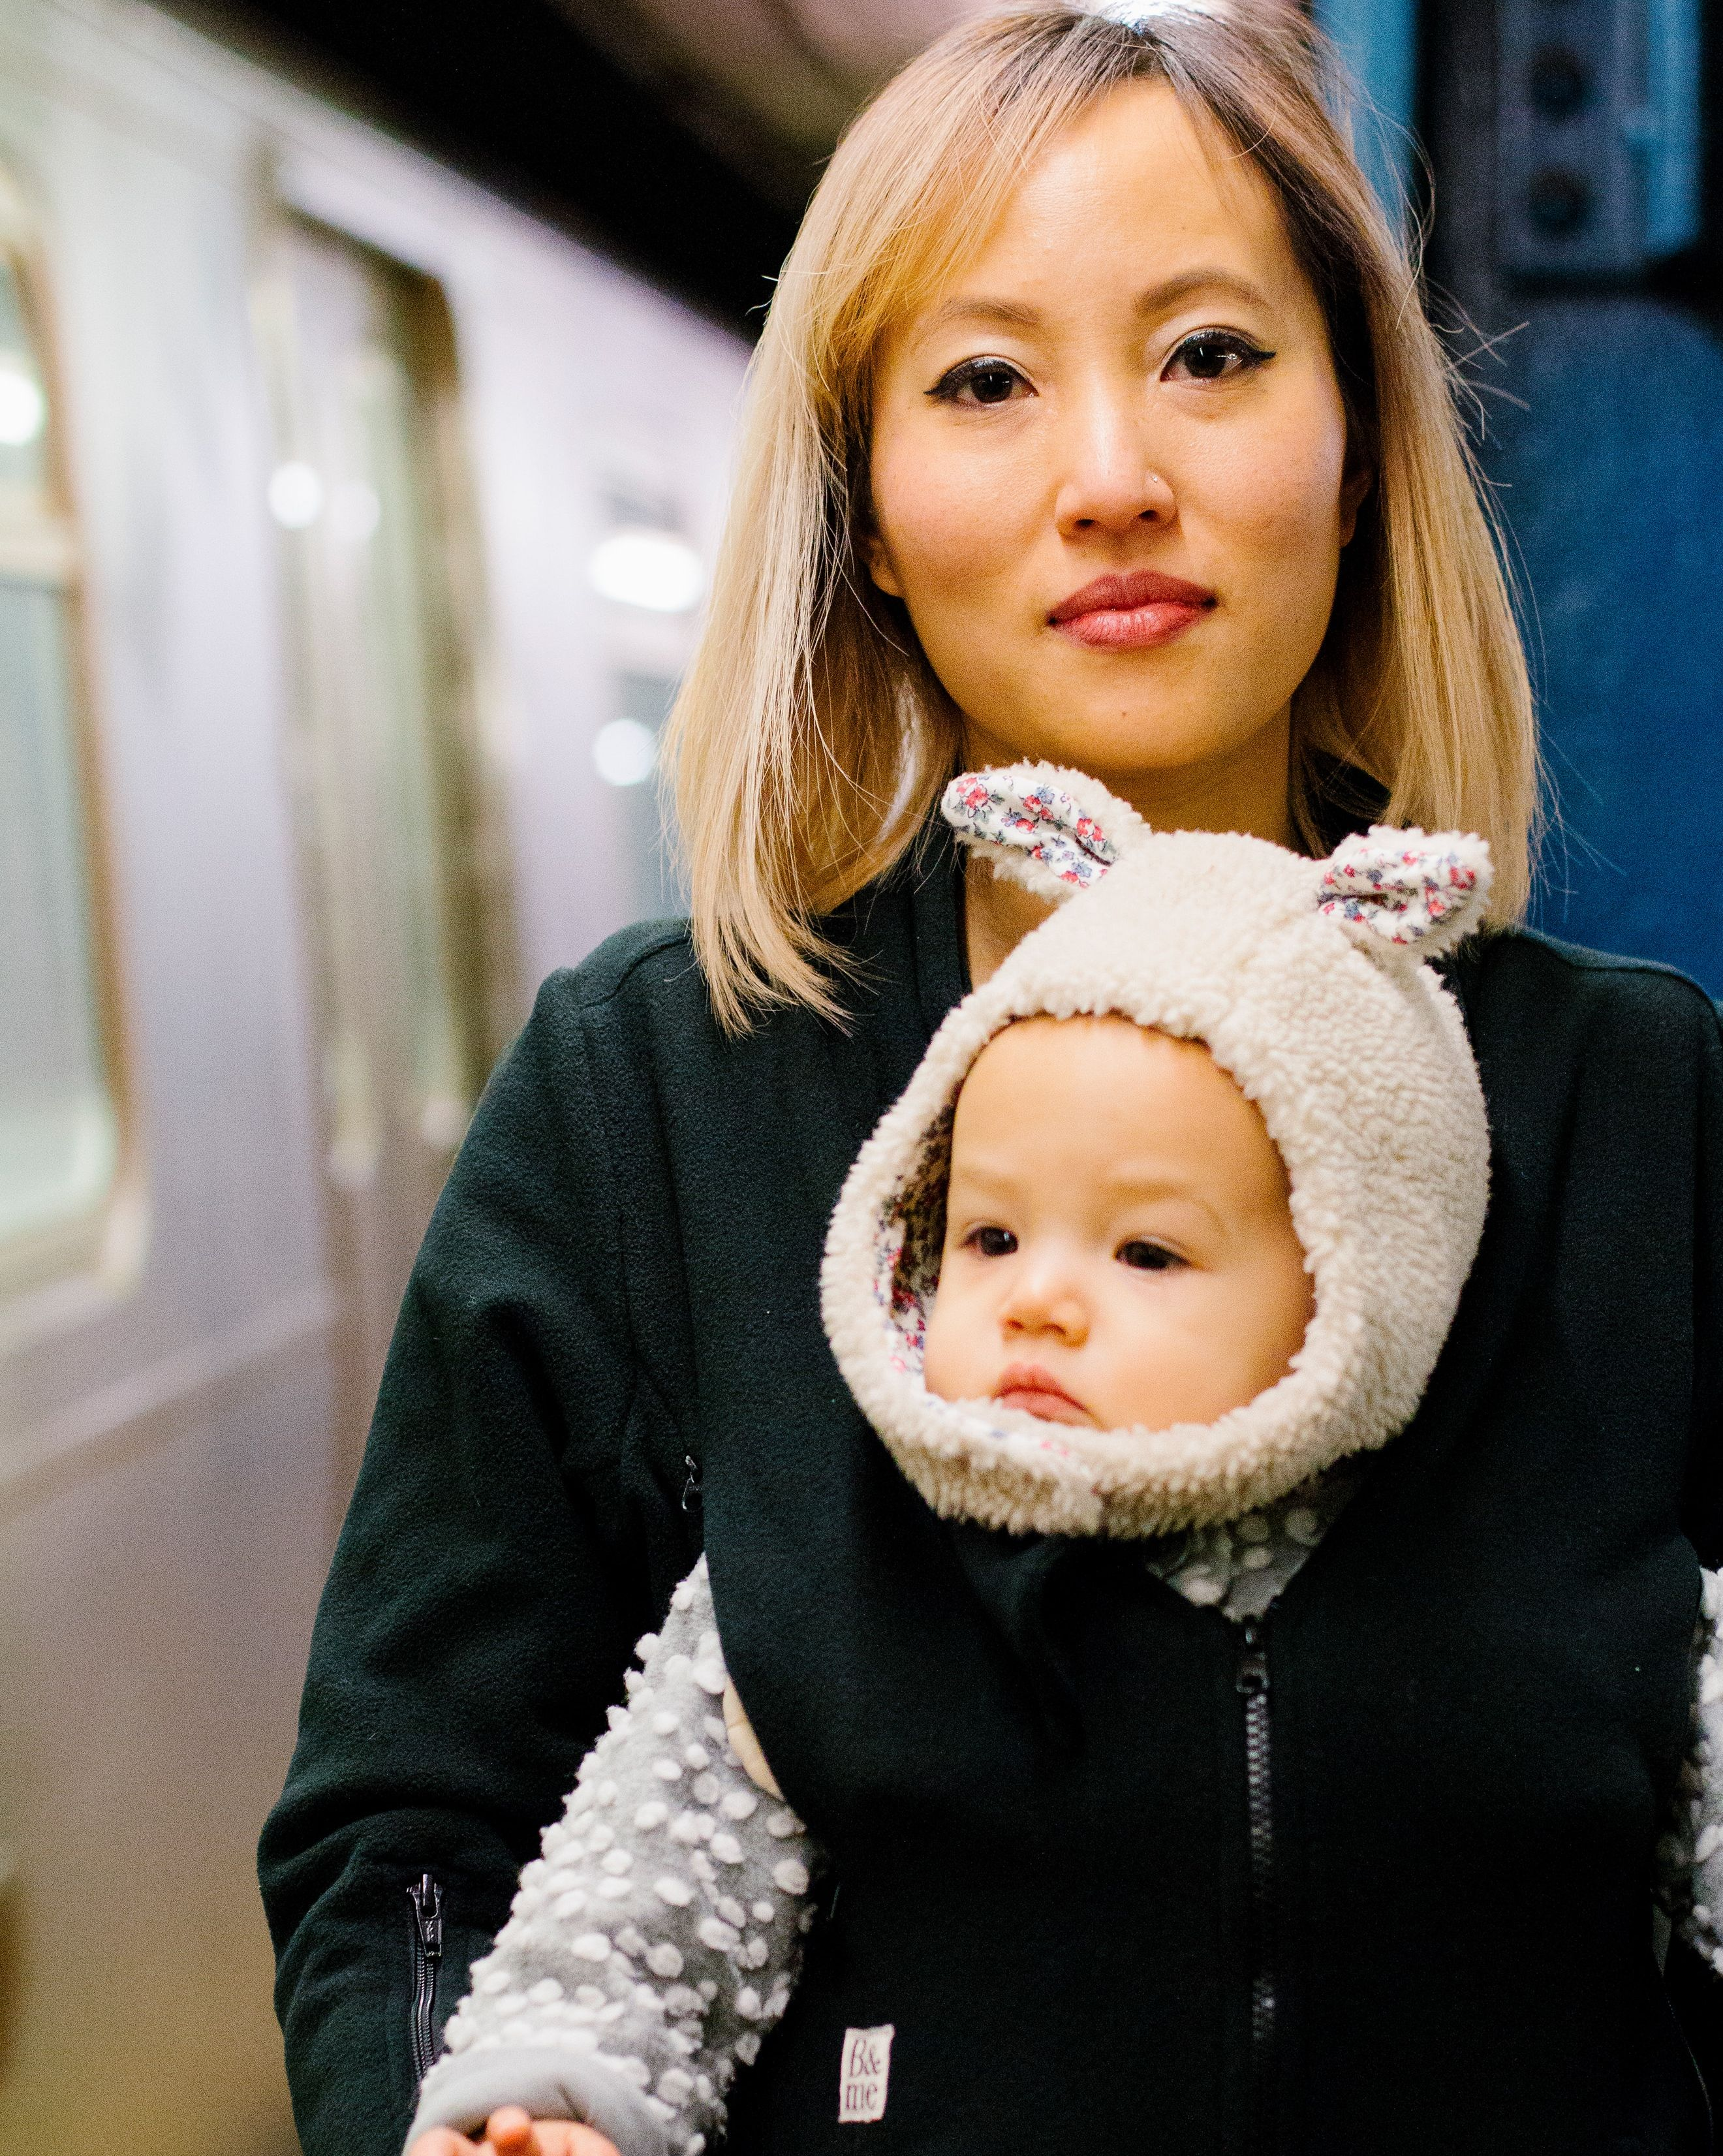 The Booker Maternity Coat Is a Dream Come True for Freezing Moms Everywhere